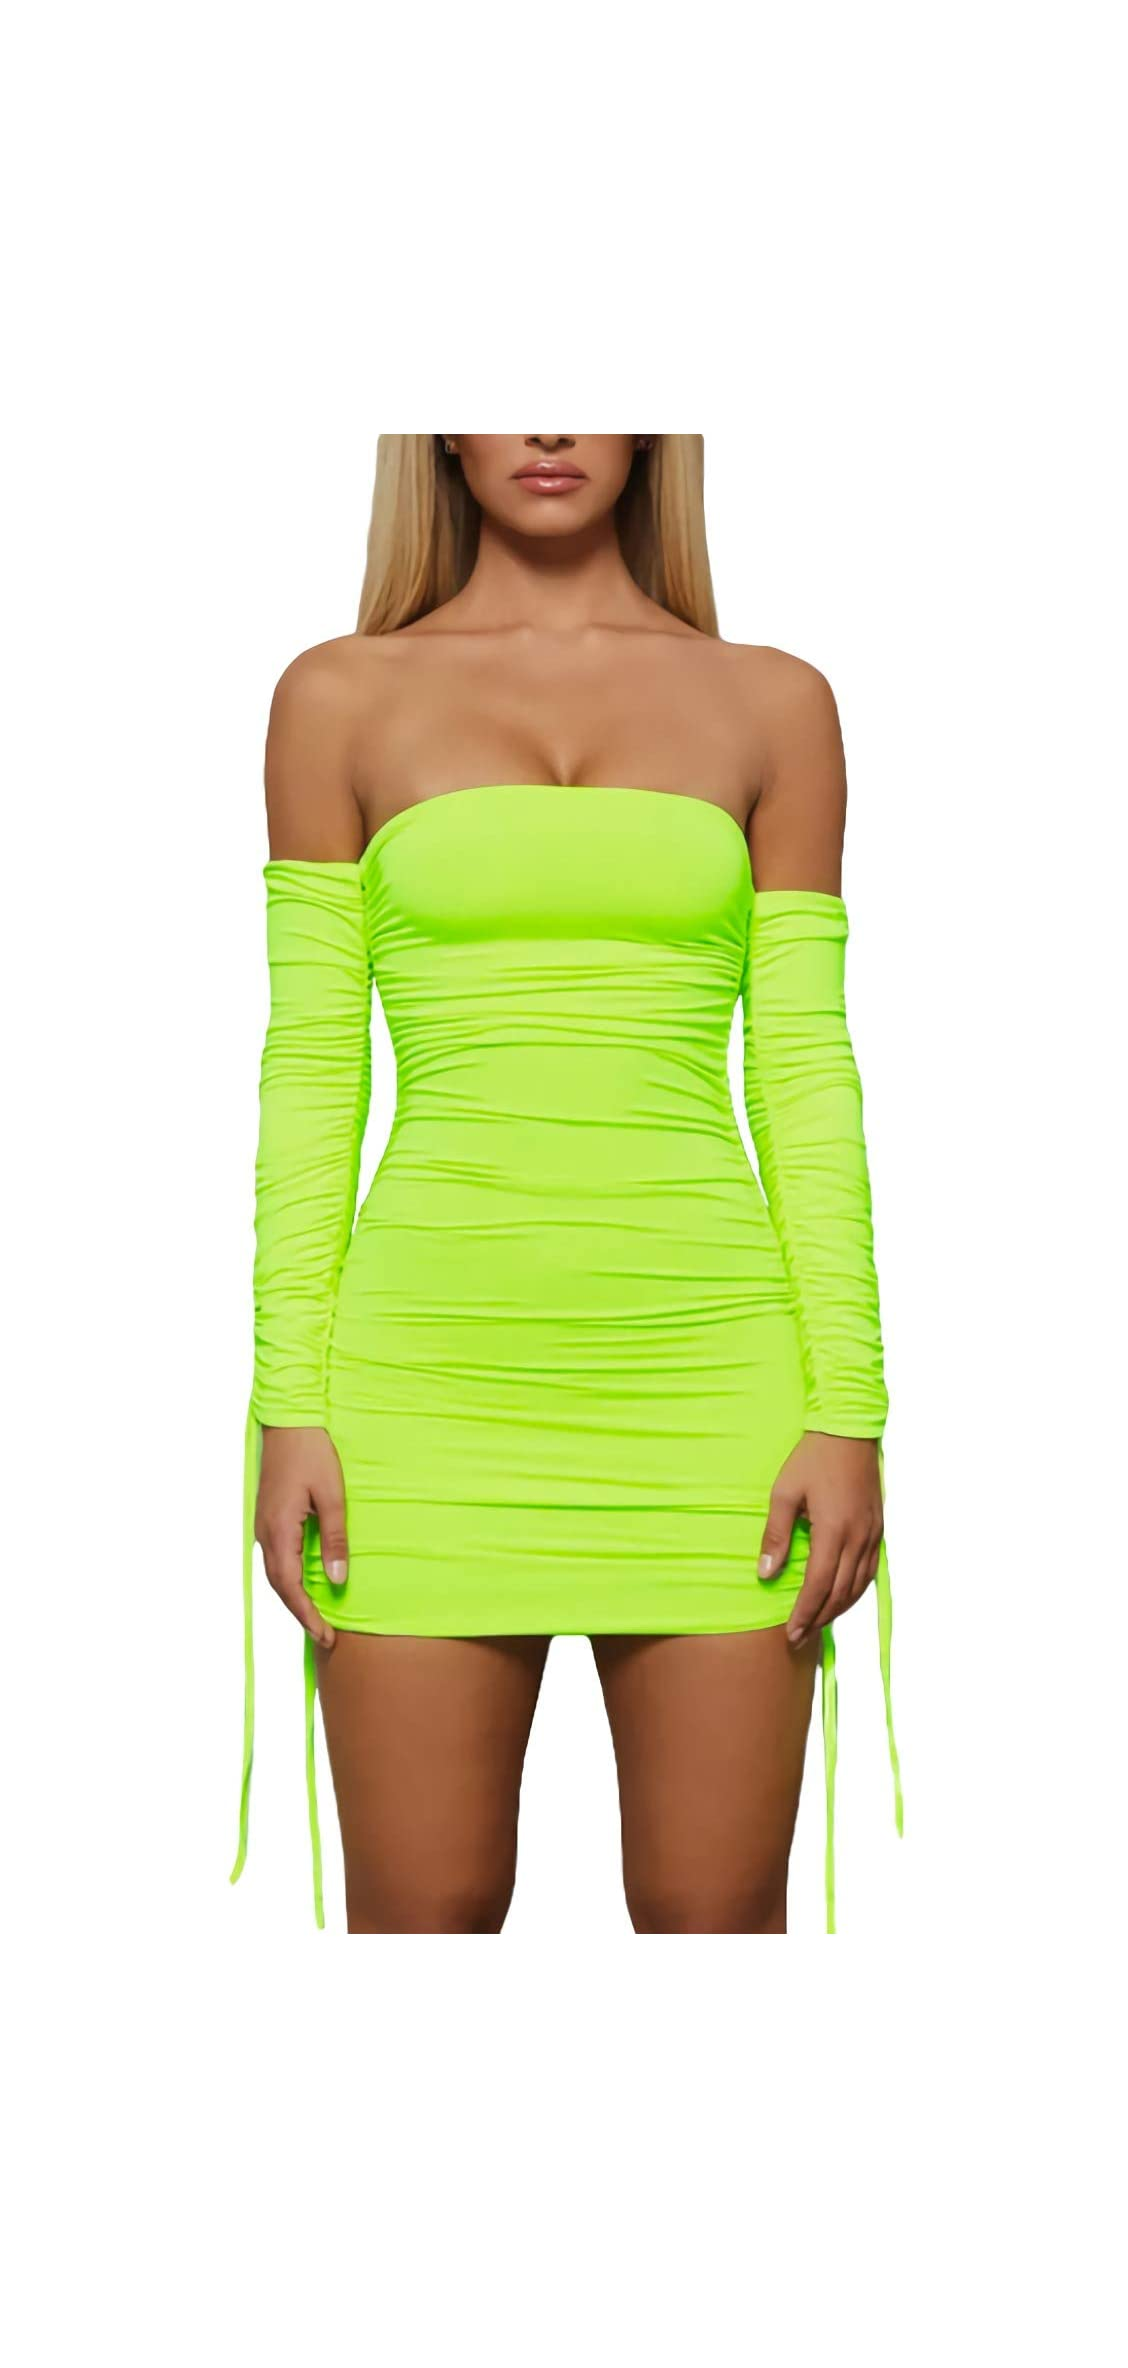 Women's Sexy Front Drawstring Spaghetti Strap Backless